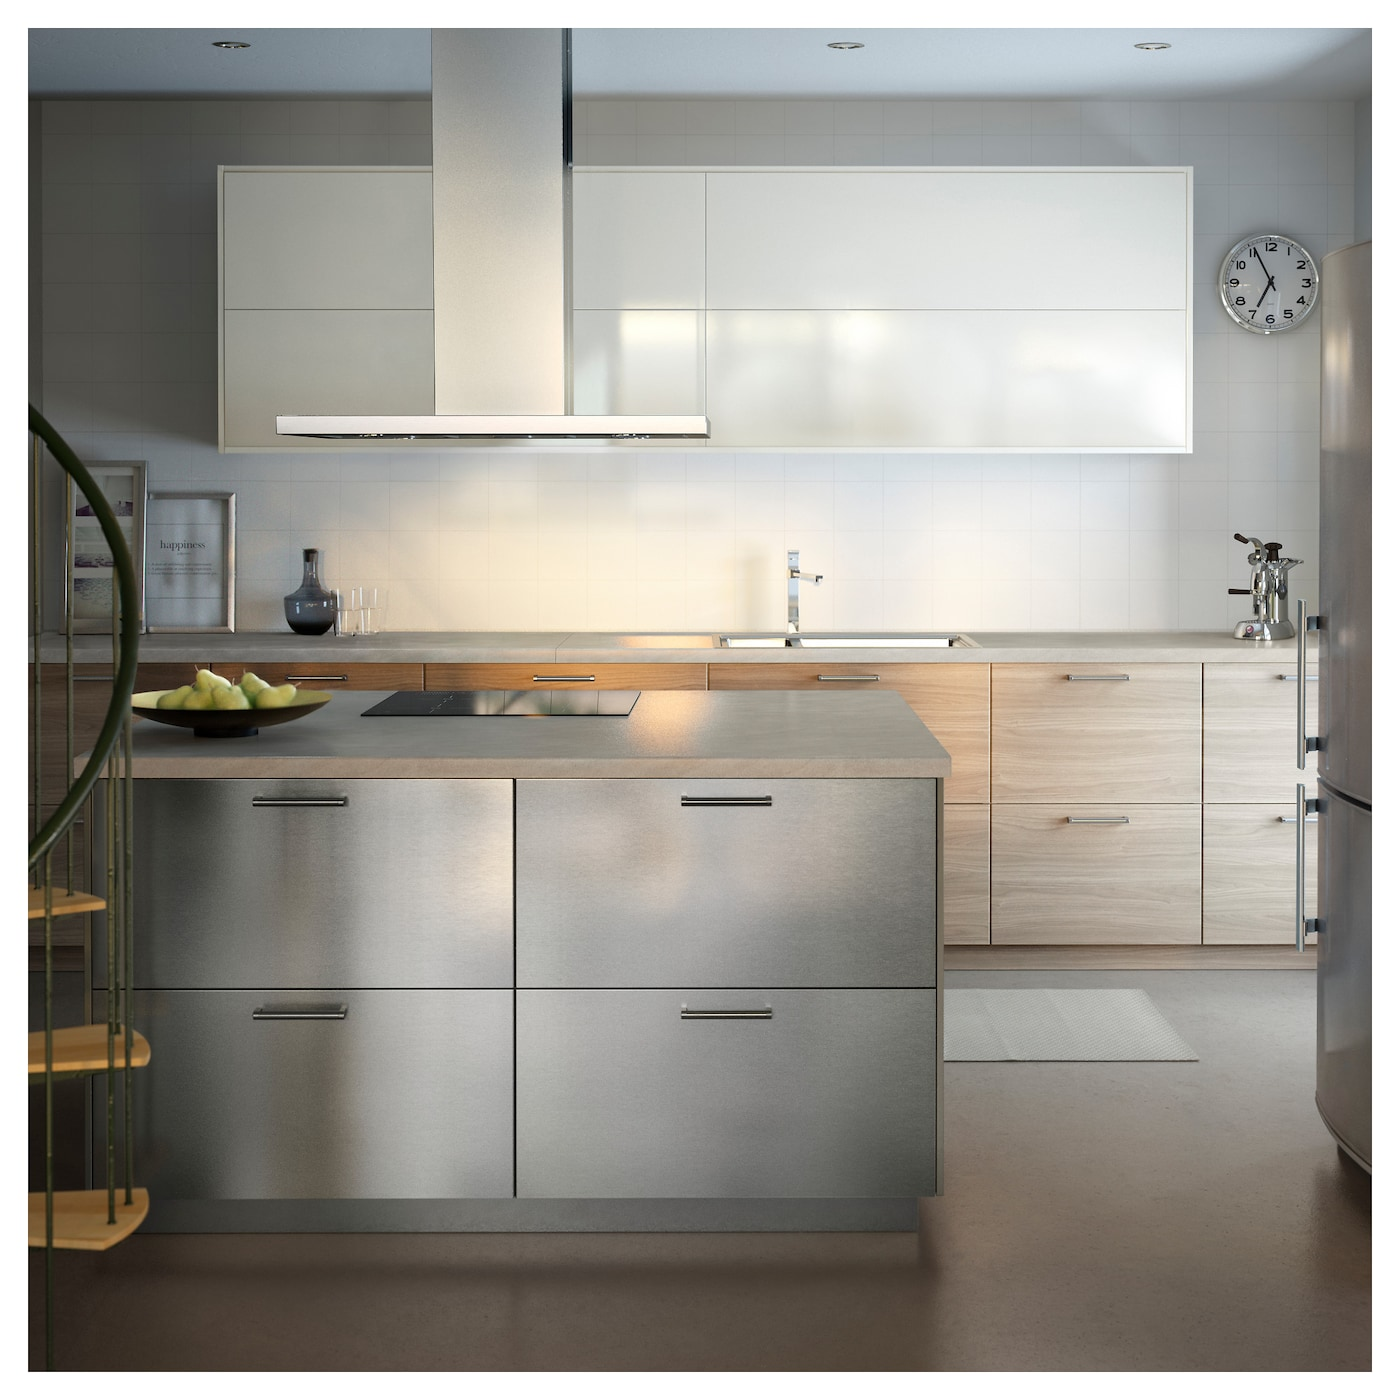 Stainless Kitchen Cabinet: GREVSTA Door Stainless Steel 40 X 80 Cm